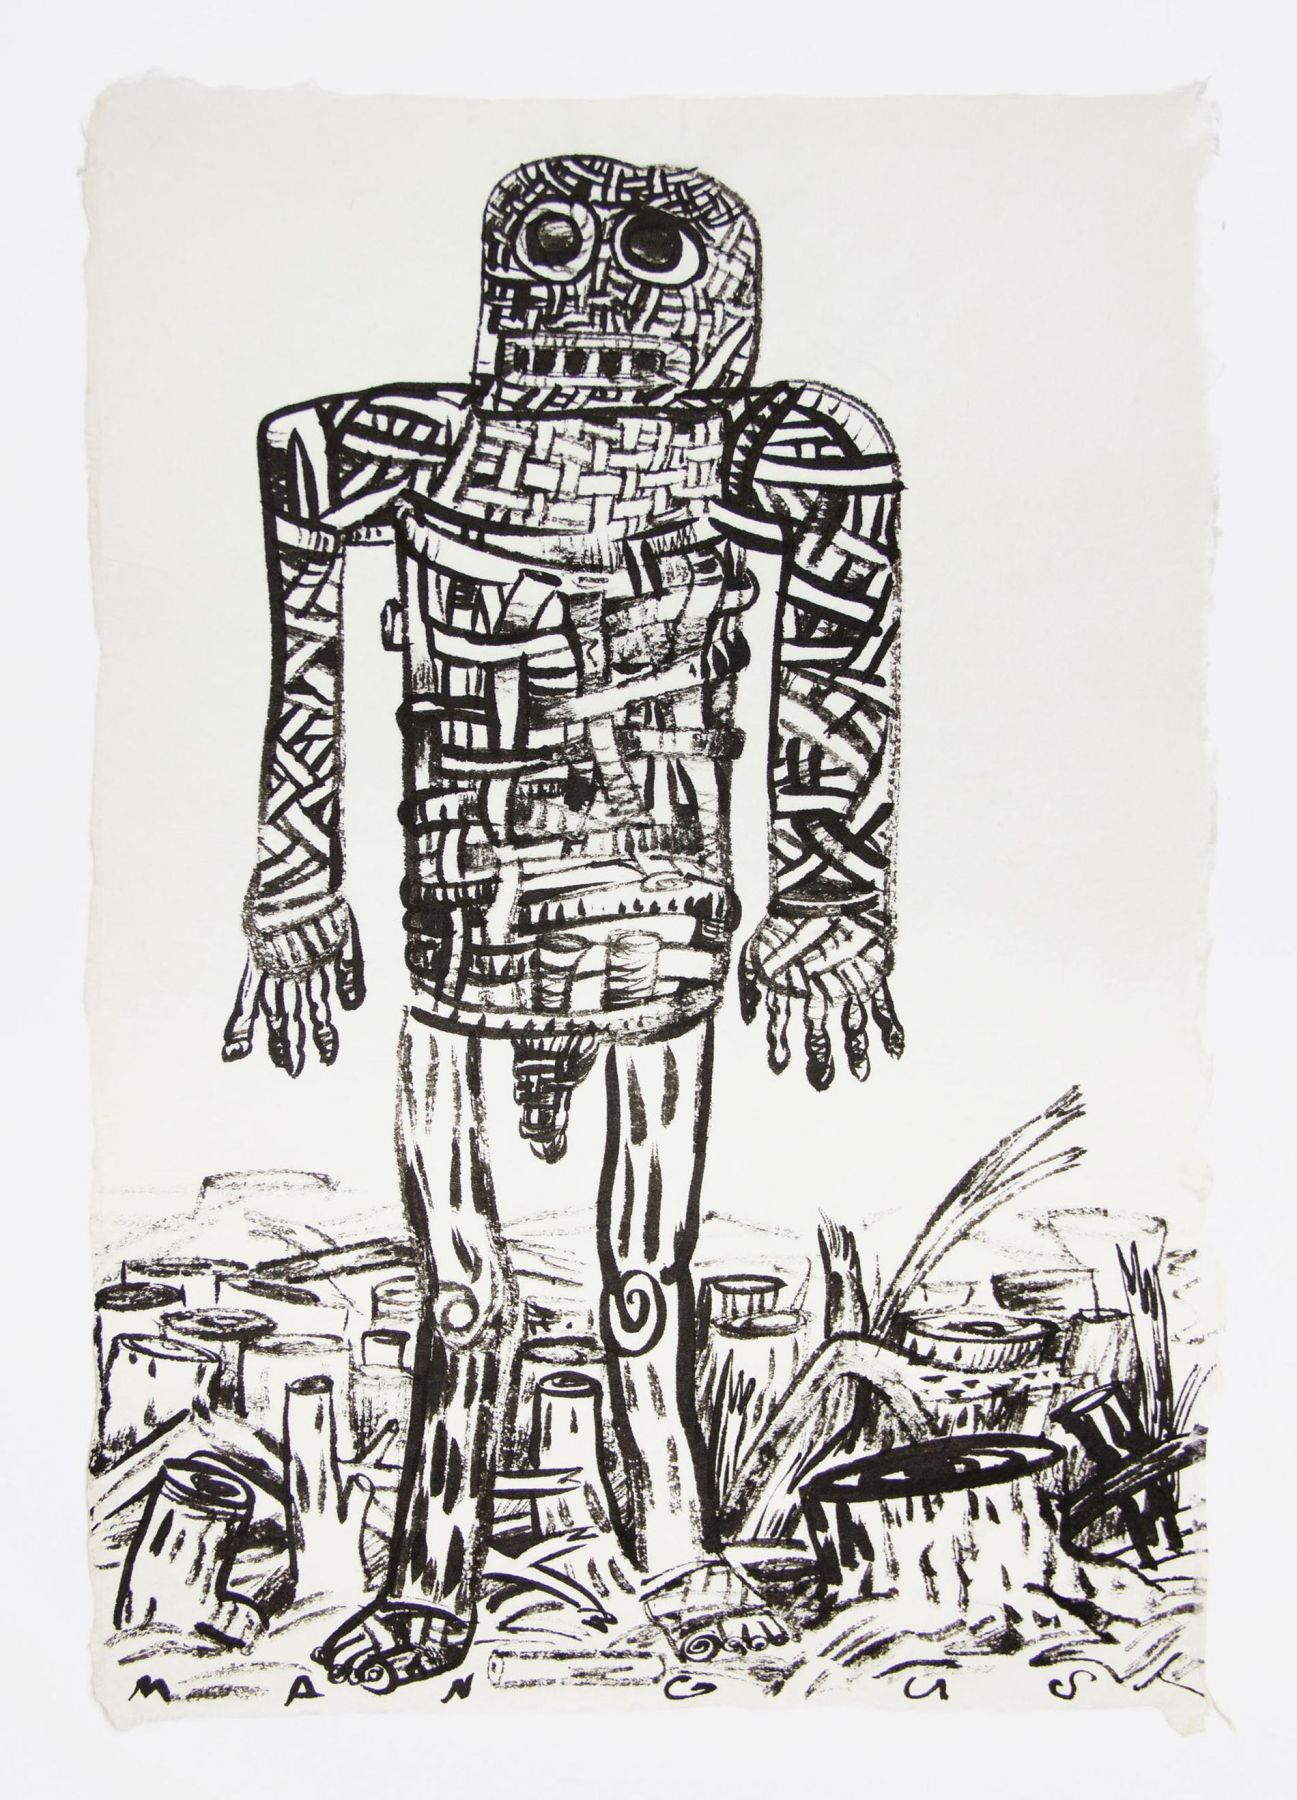 , Basket Armor, 1988, Ink on mulberry paper, 17 x 12 1/2 in.